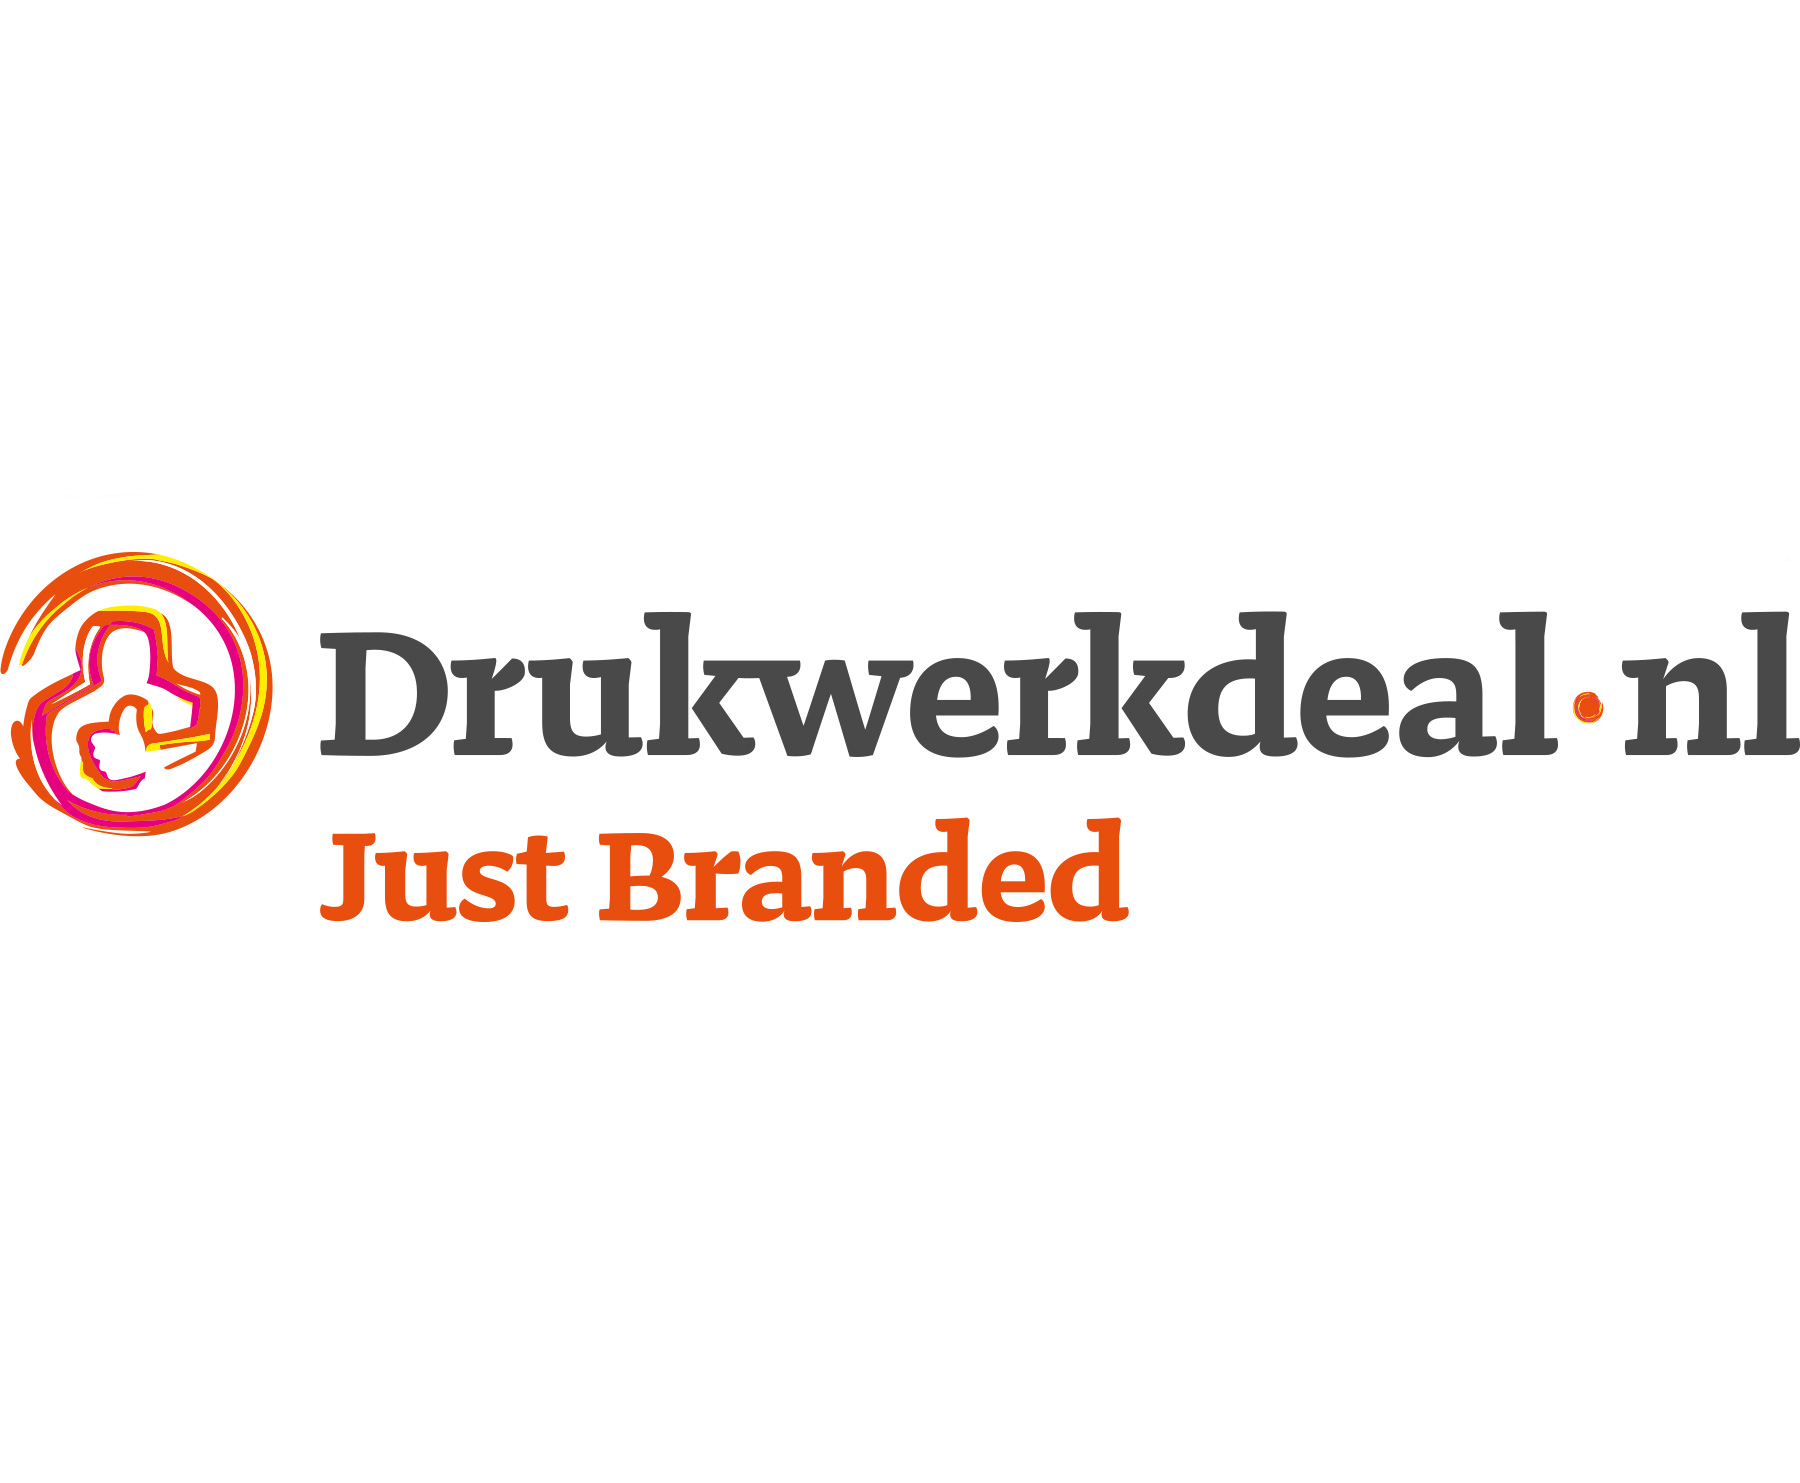 Drukwerkdeal Just Branded